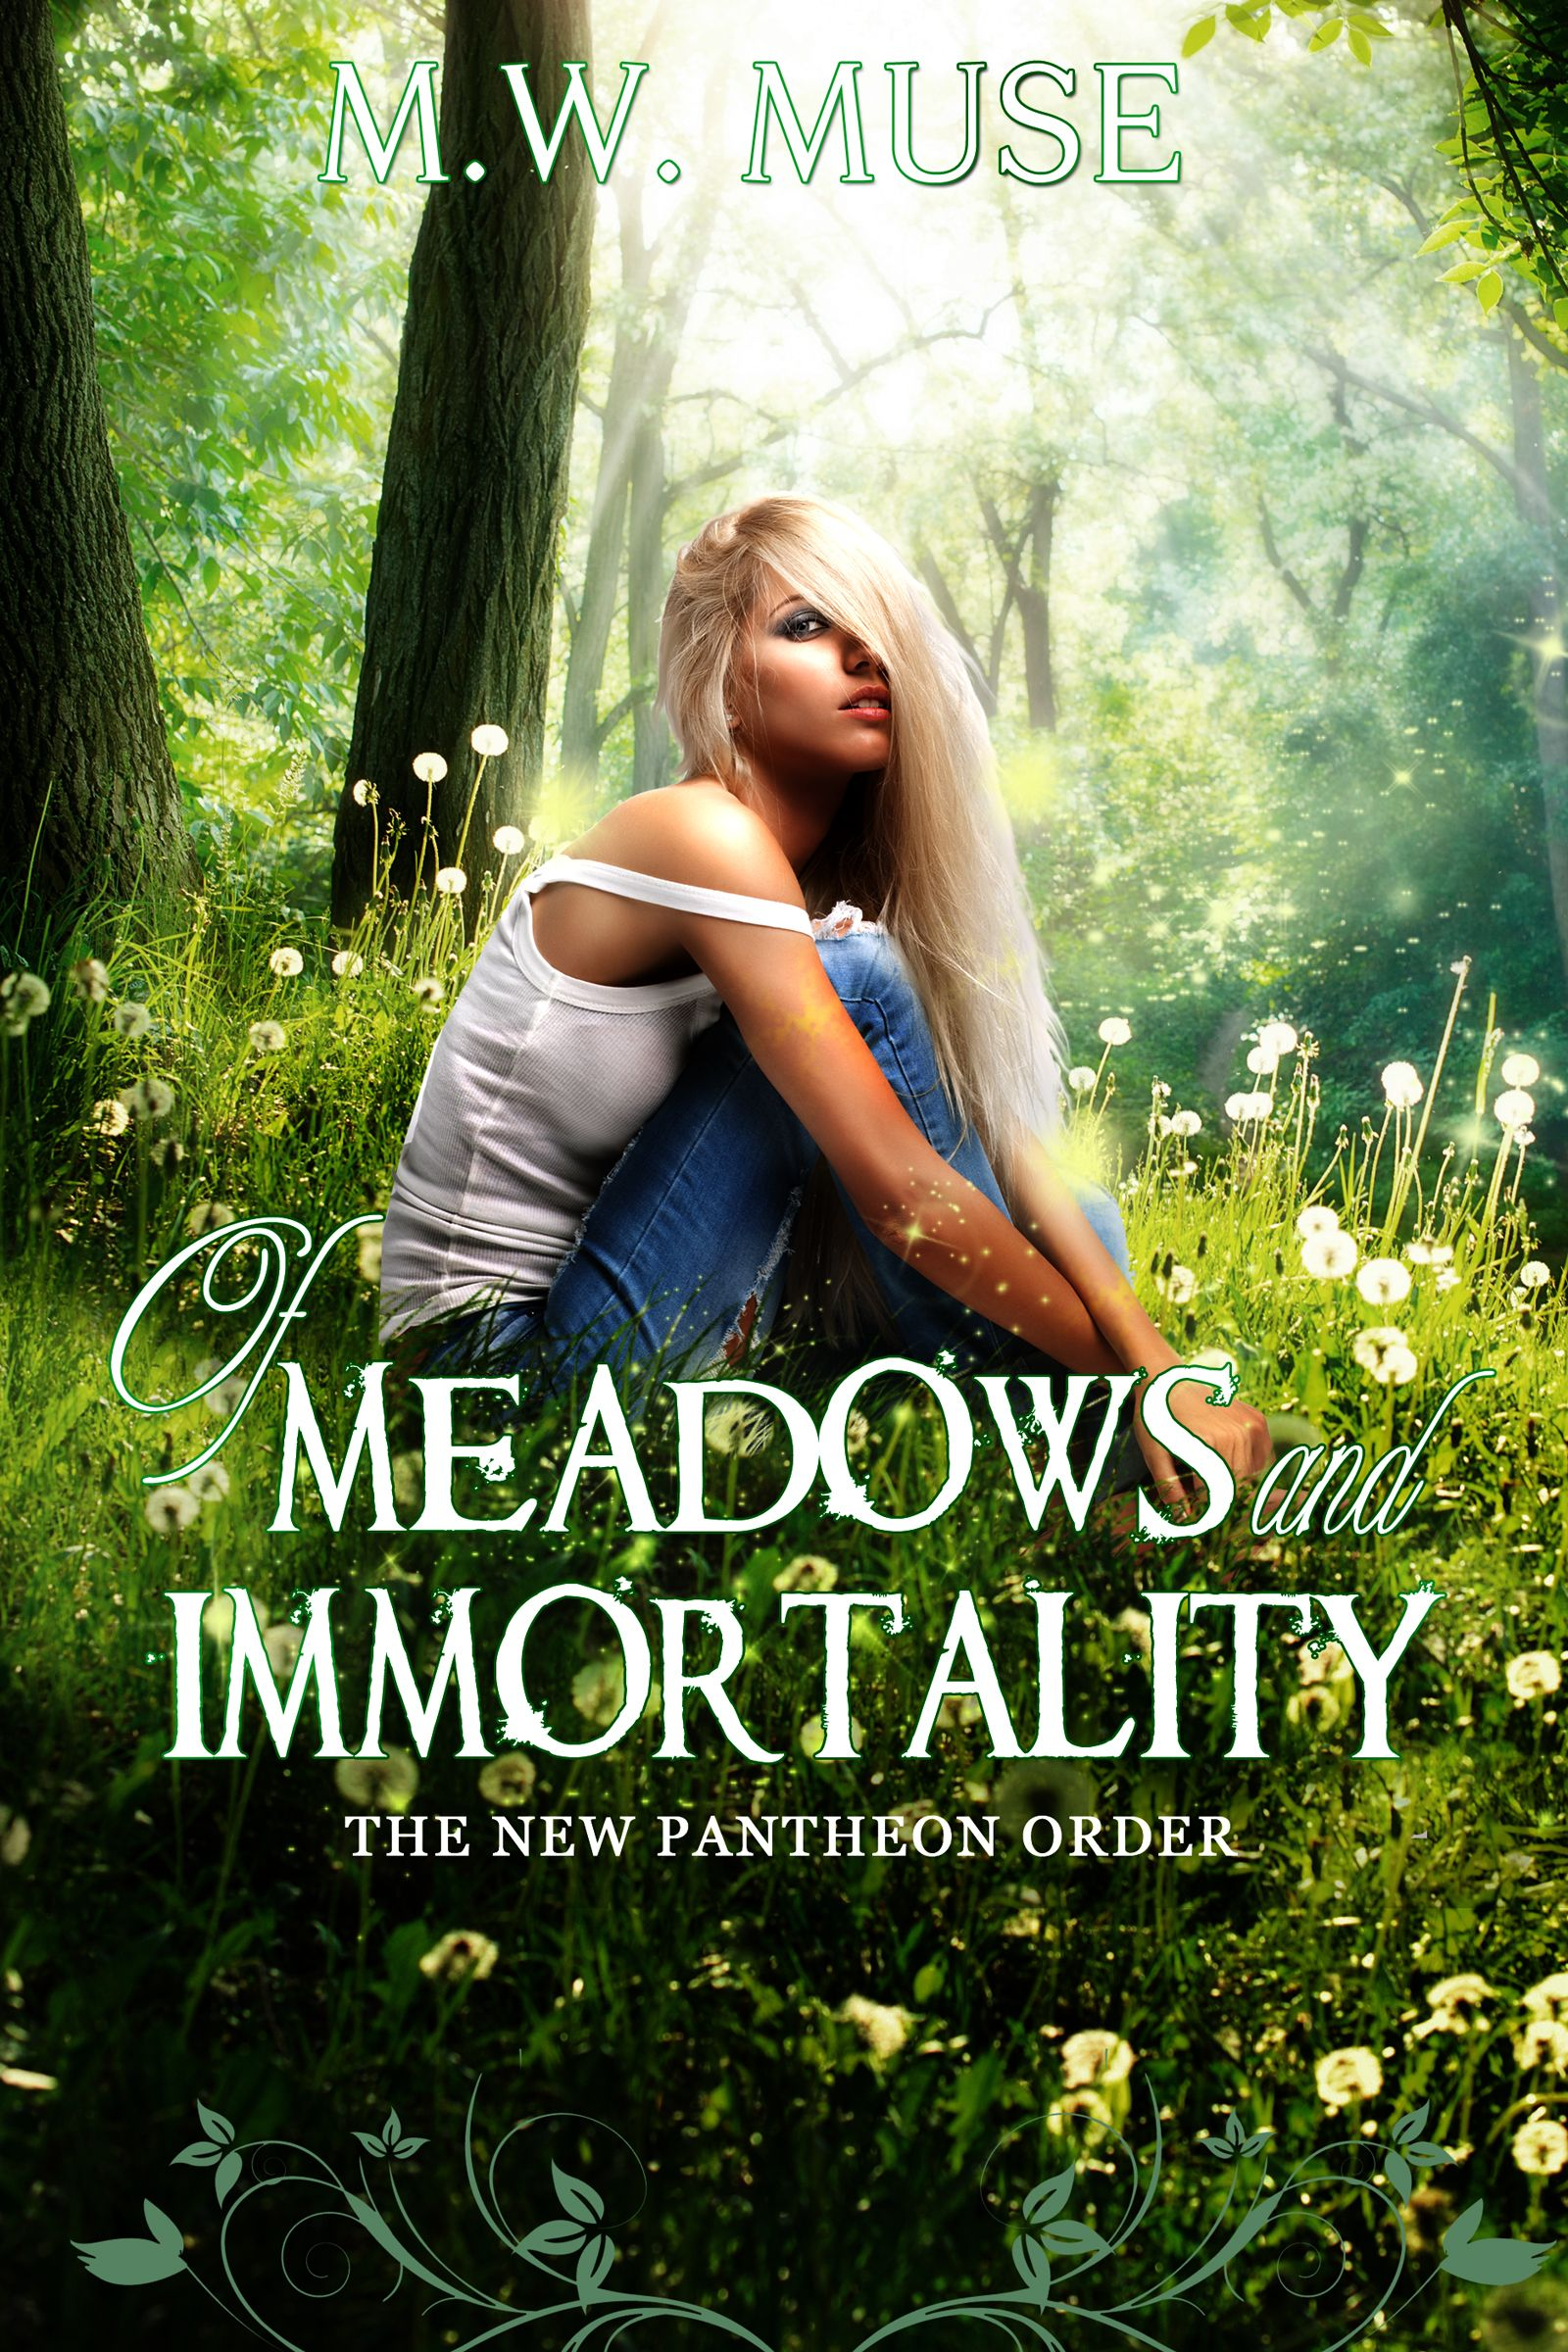 Pin by mandy harbin on book covers mw muse premade